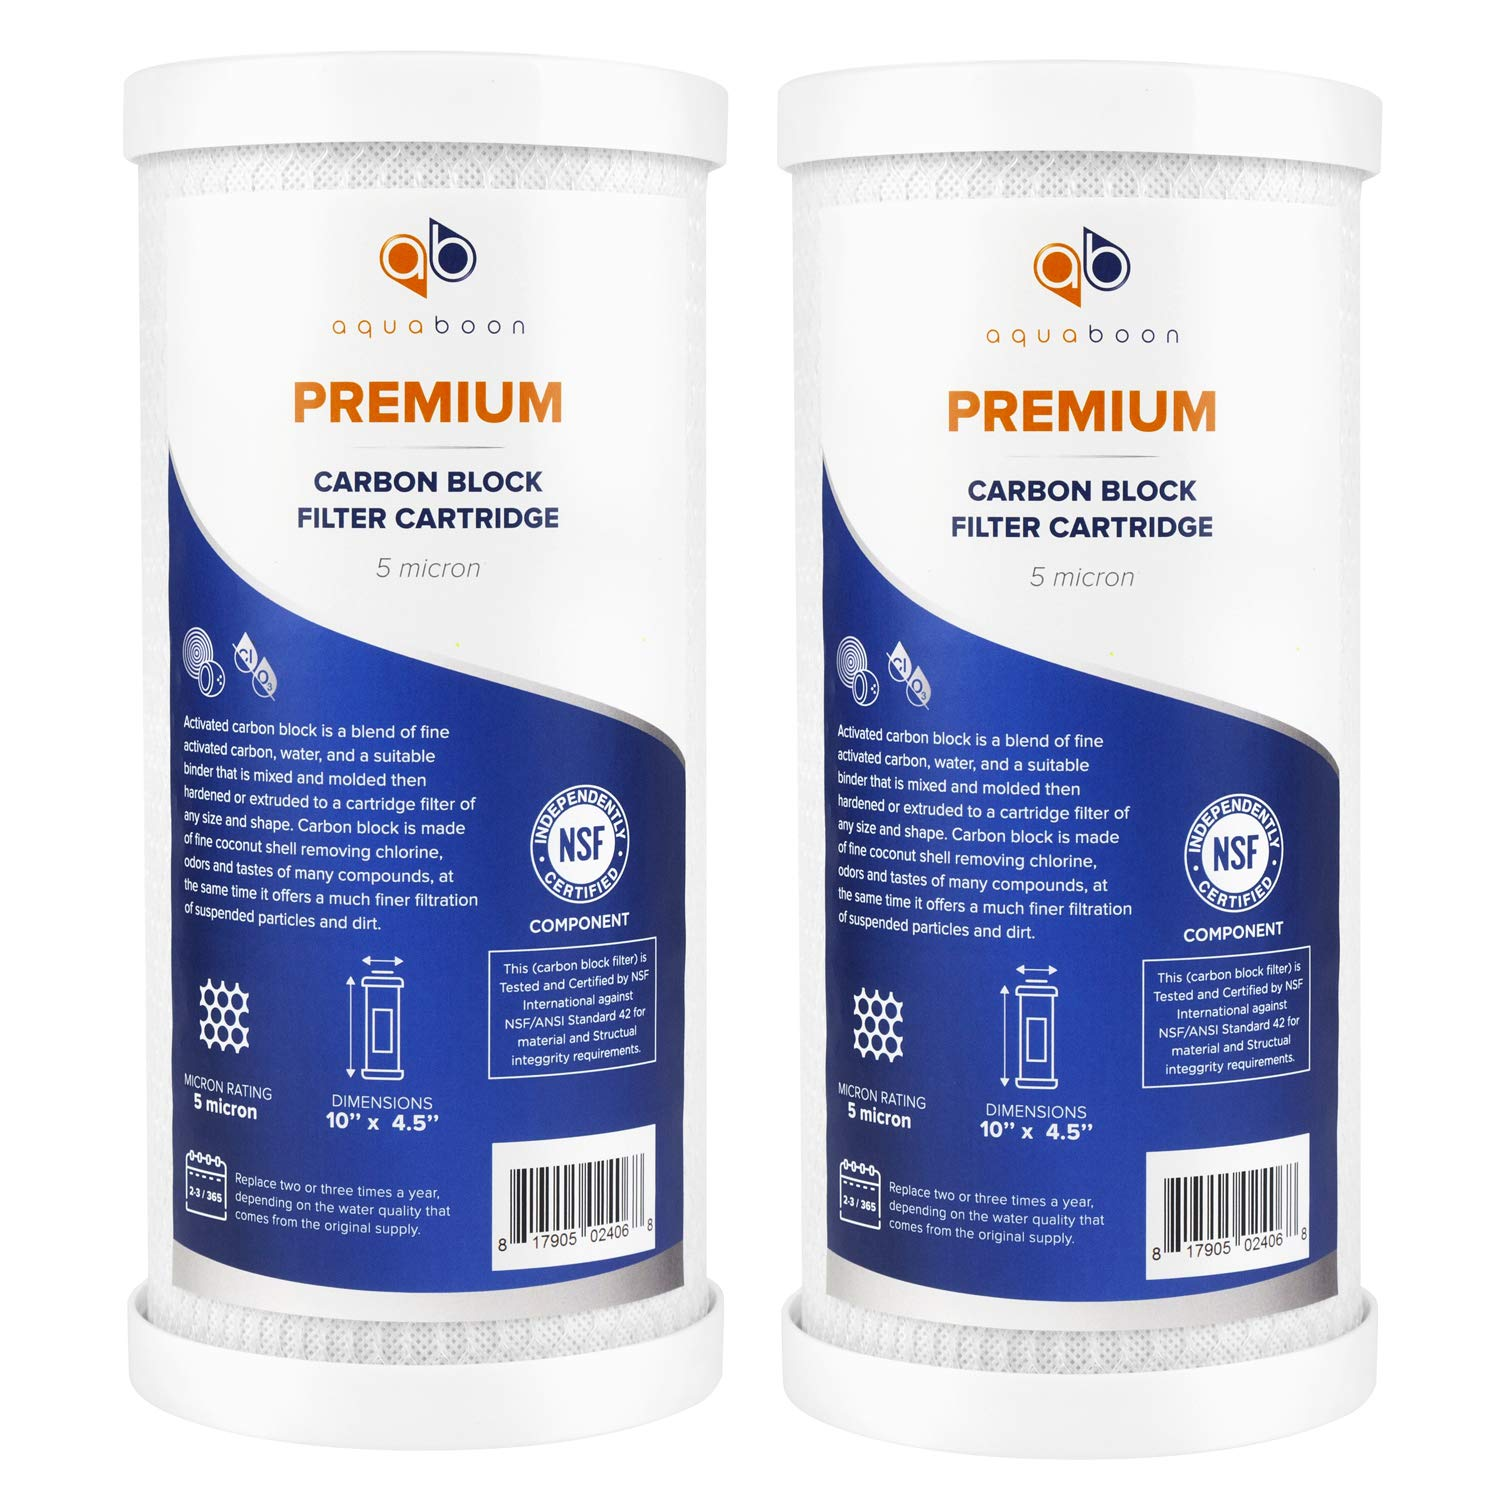 Aquaboon Premium Big Blue Coconut Shell Replacement Water Filter Cartridge   Activated Carbon Block CTO   Universal Whole House 5 Micron 10 x 4.5 inch Cartridge   Compatible with Pentek EP-BB 2-Pack